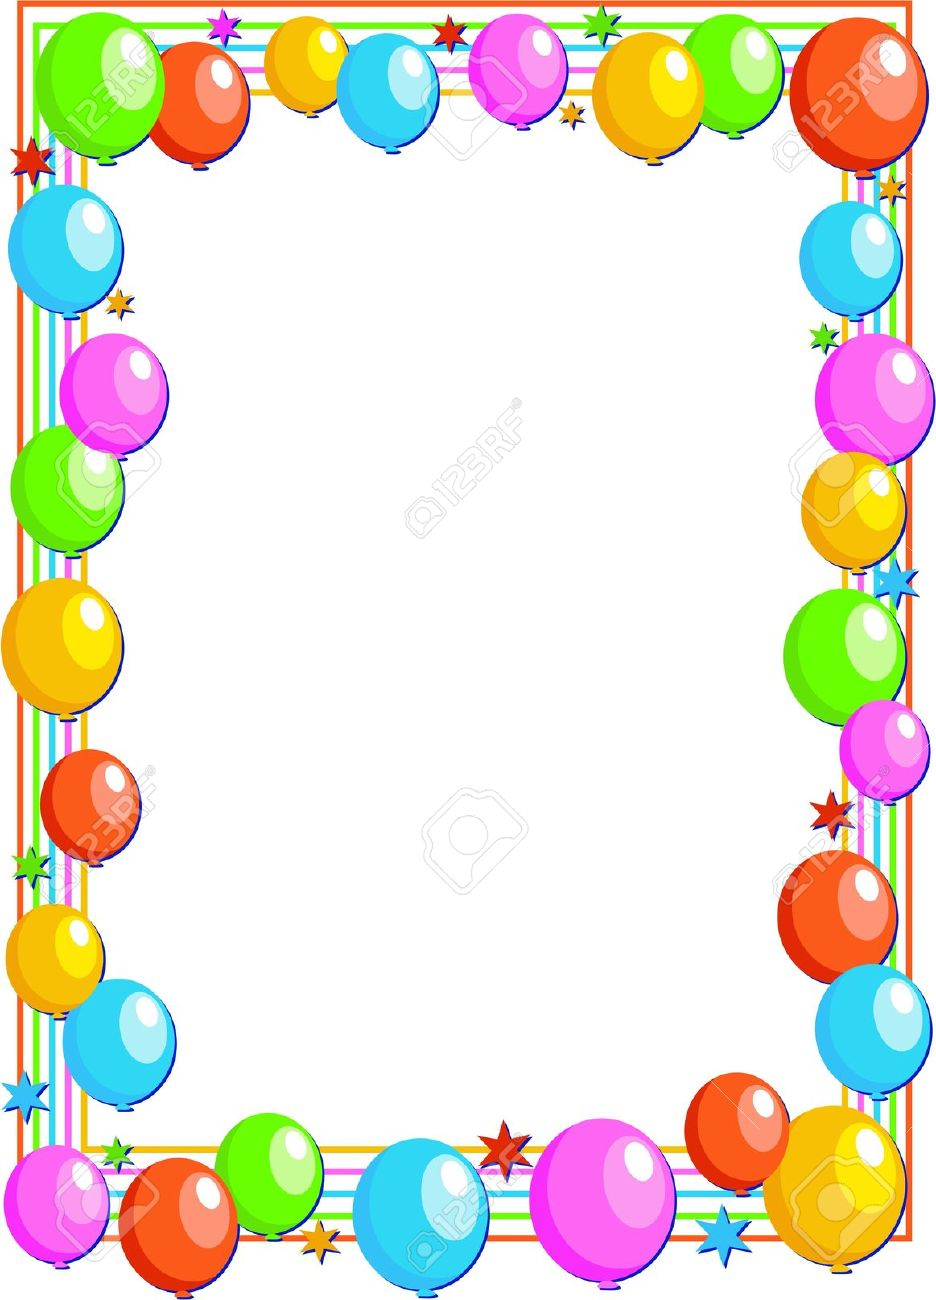 Colourful Birthday Party Balloon Page Border Design Stock Photo